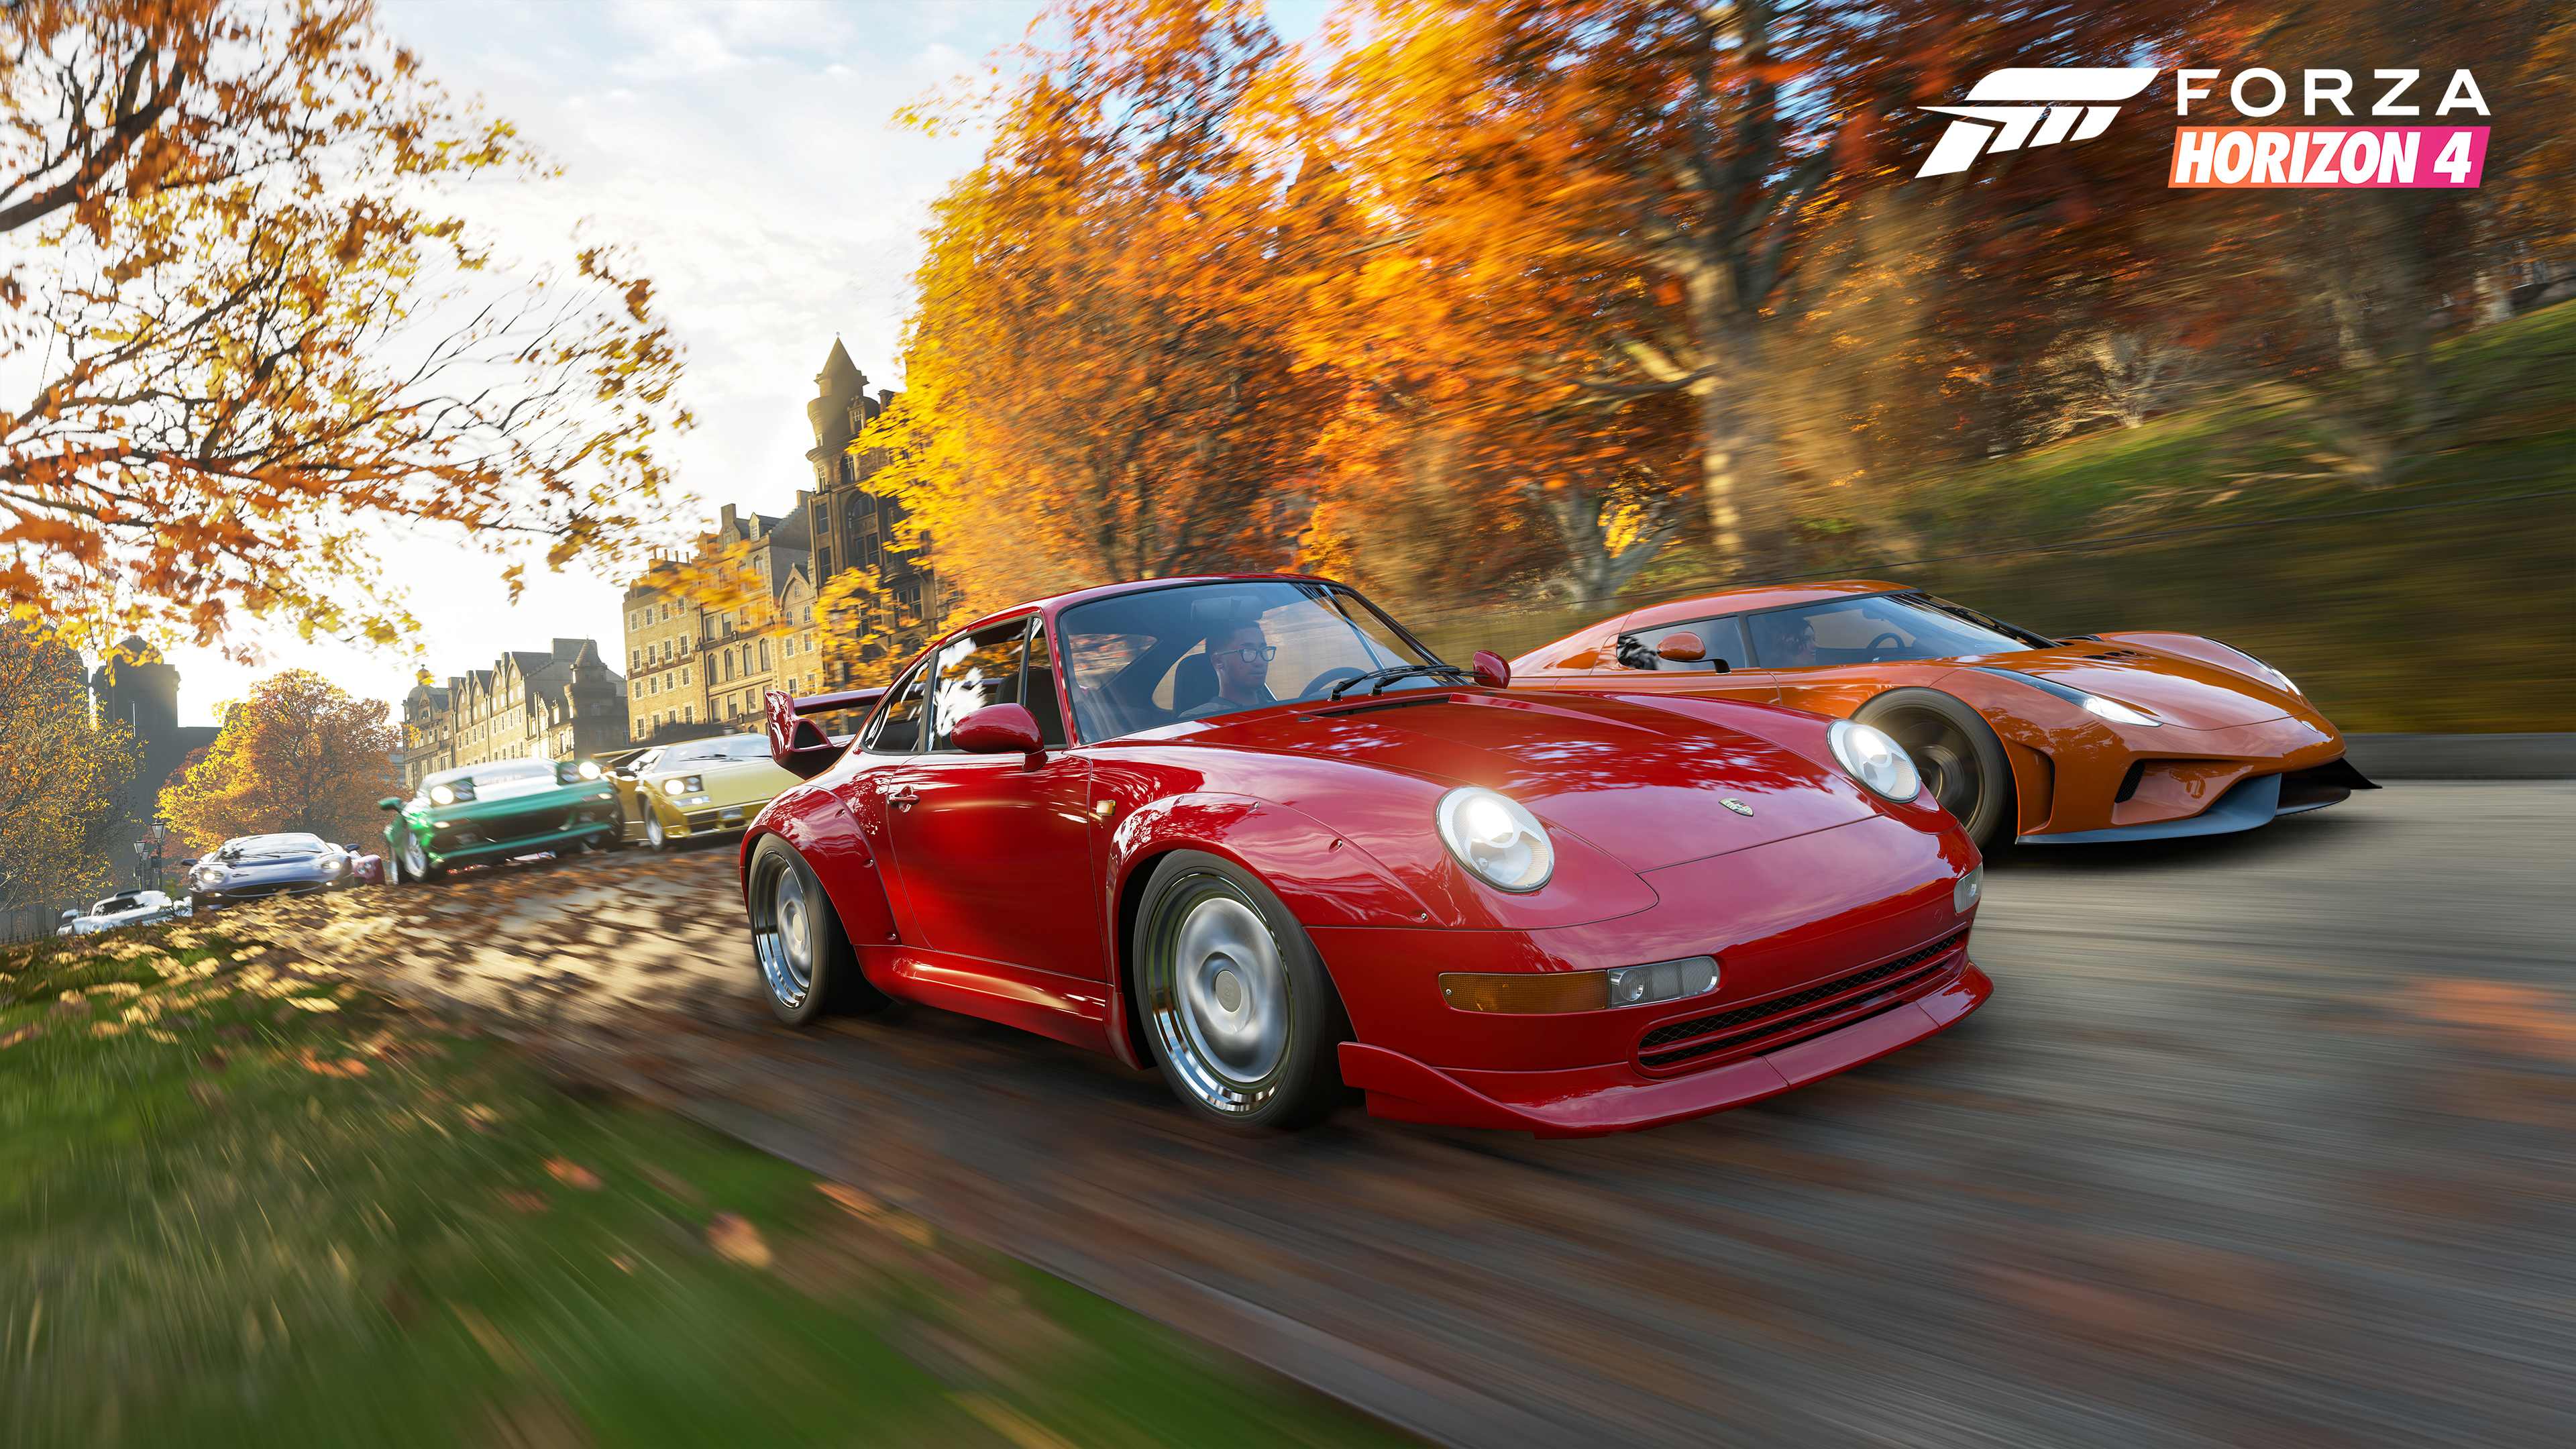 The Best Parts of 'Forza Horizon 4' Have Nothing to Do with Racing